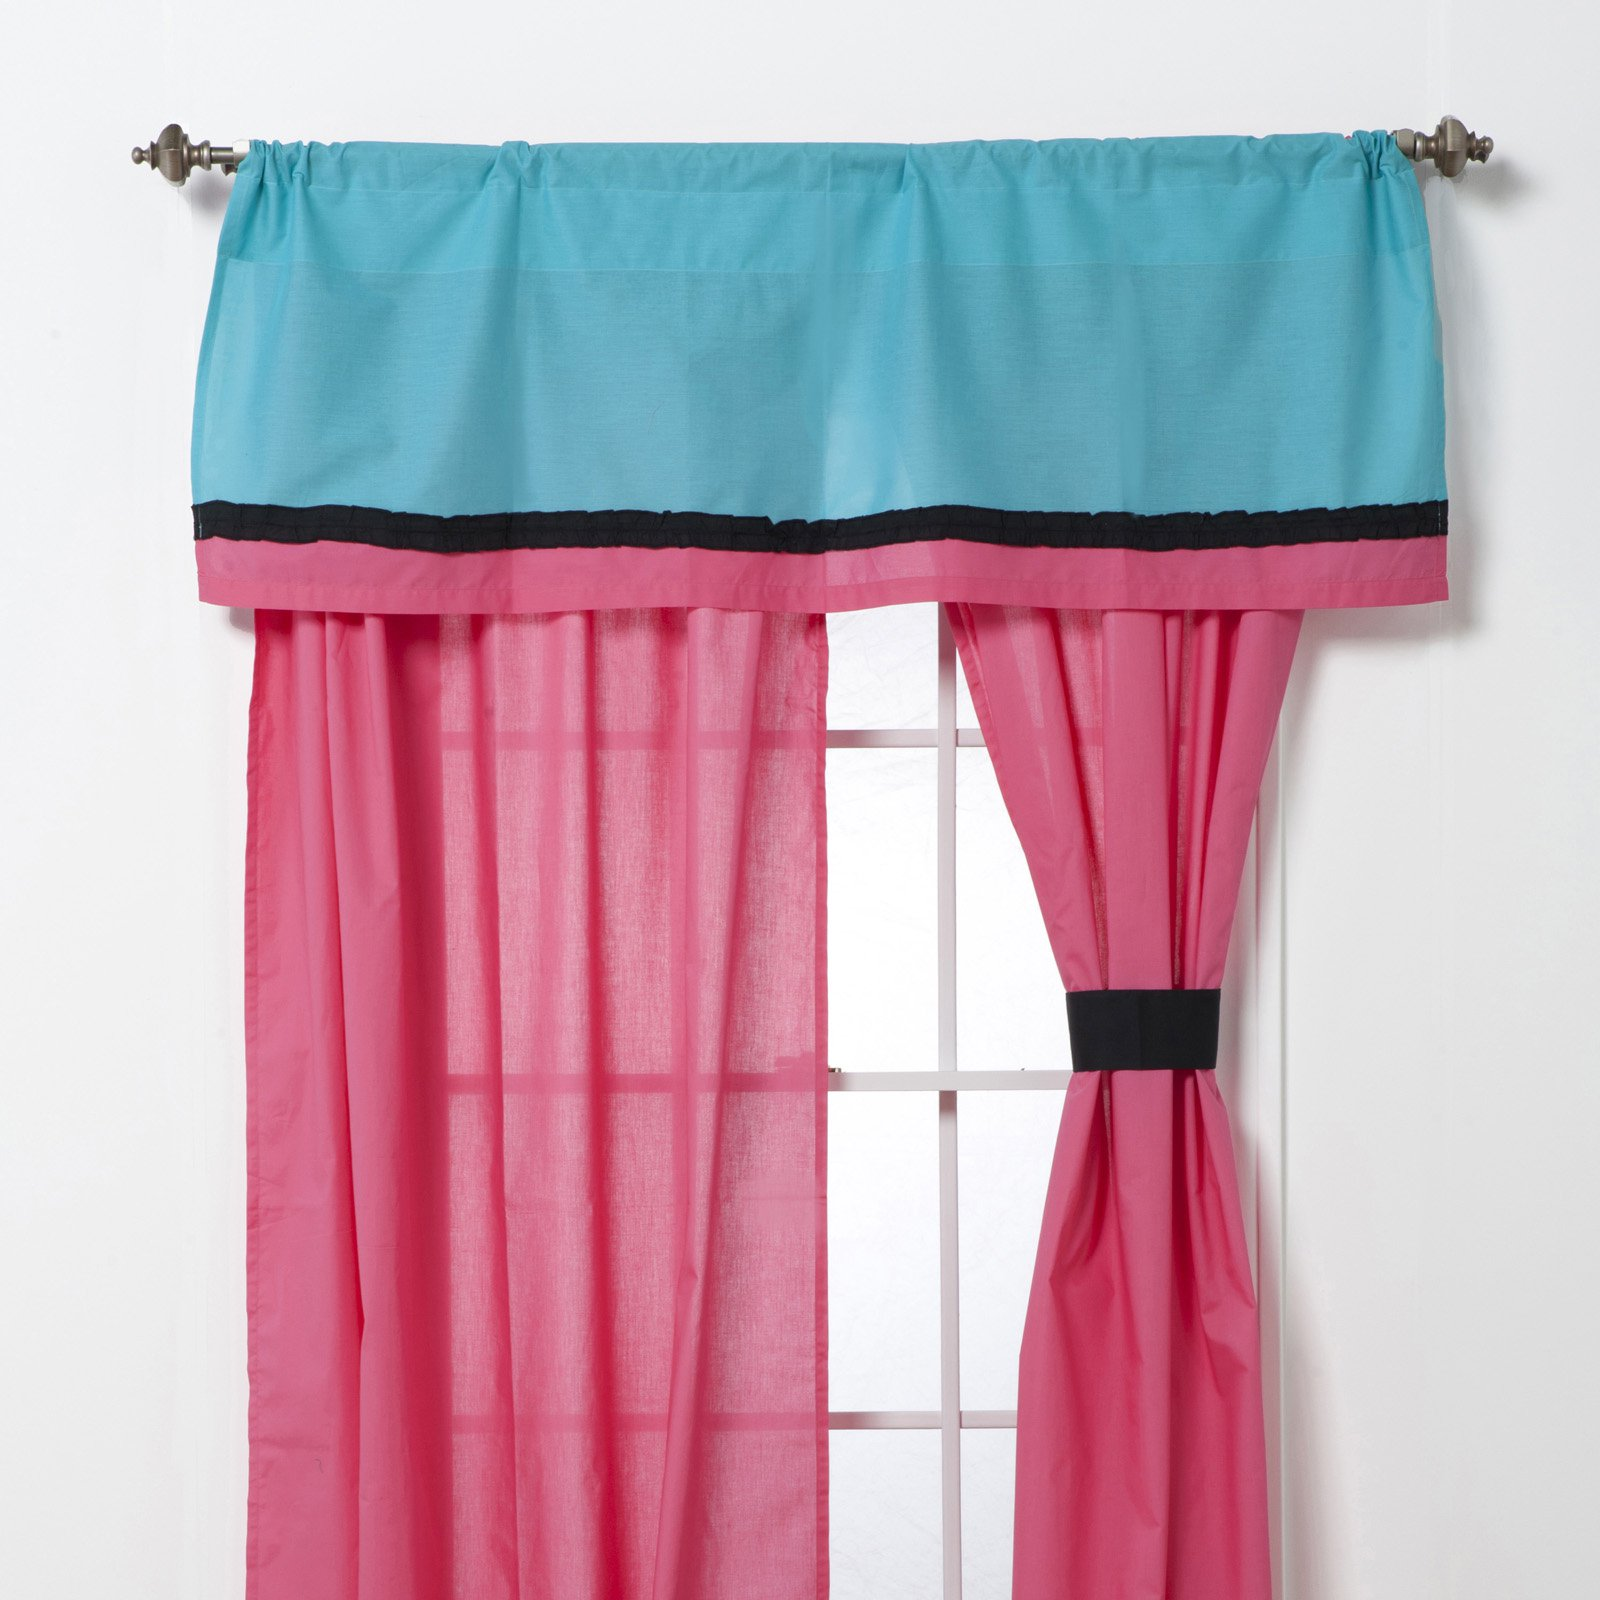 Magical Michayla Curtain Panel Pair with Optional Valance